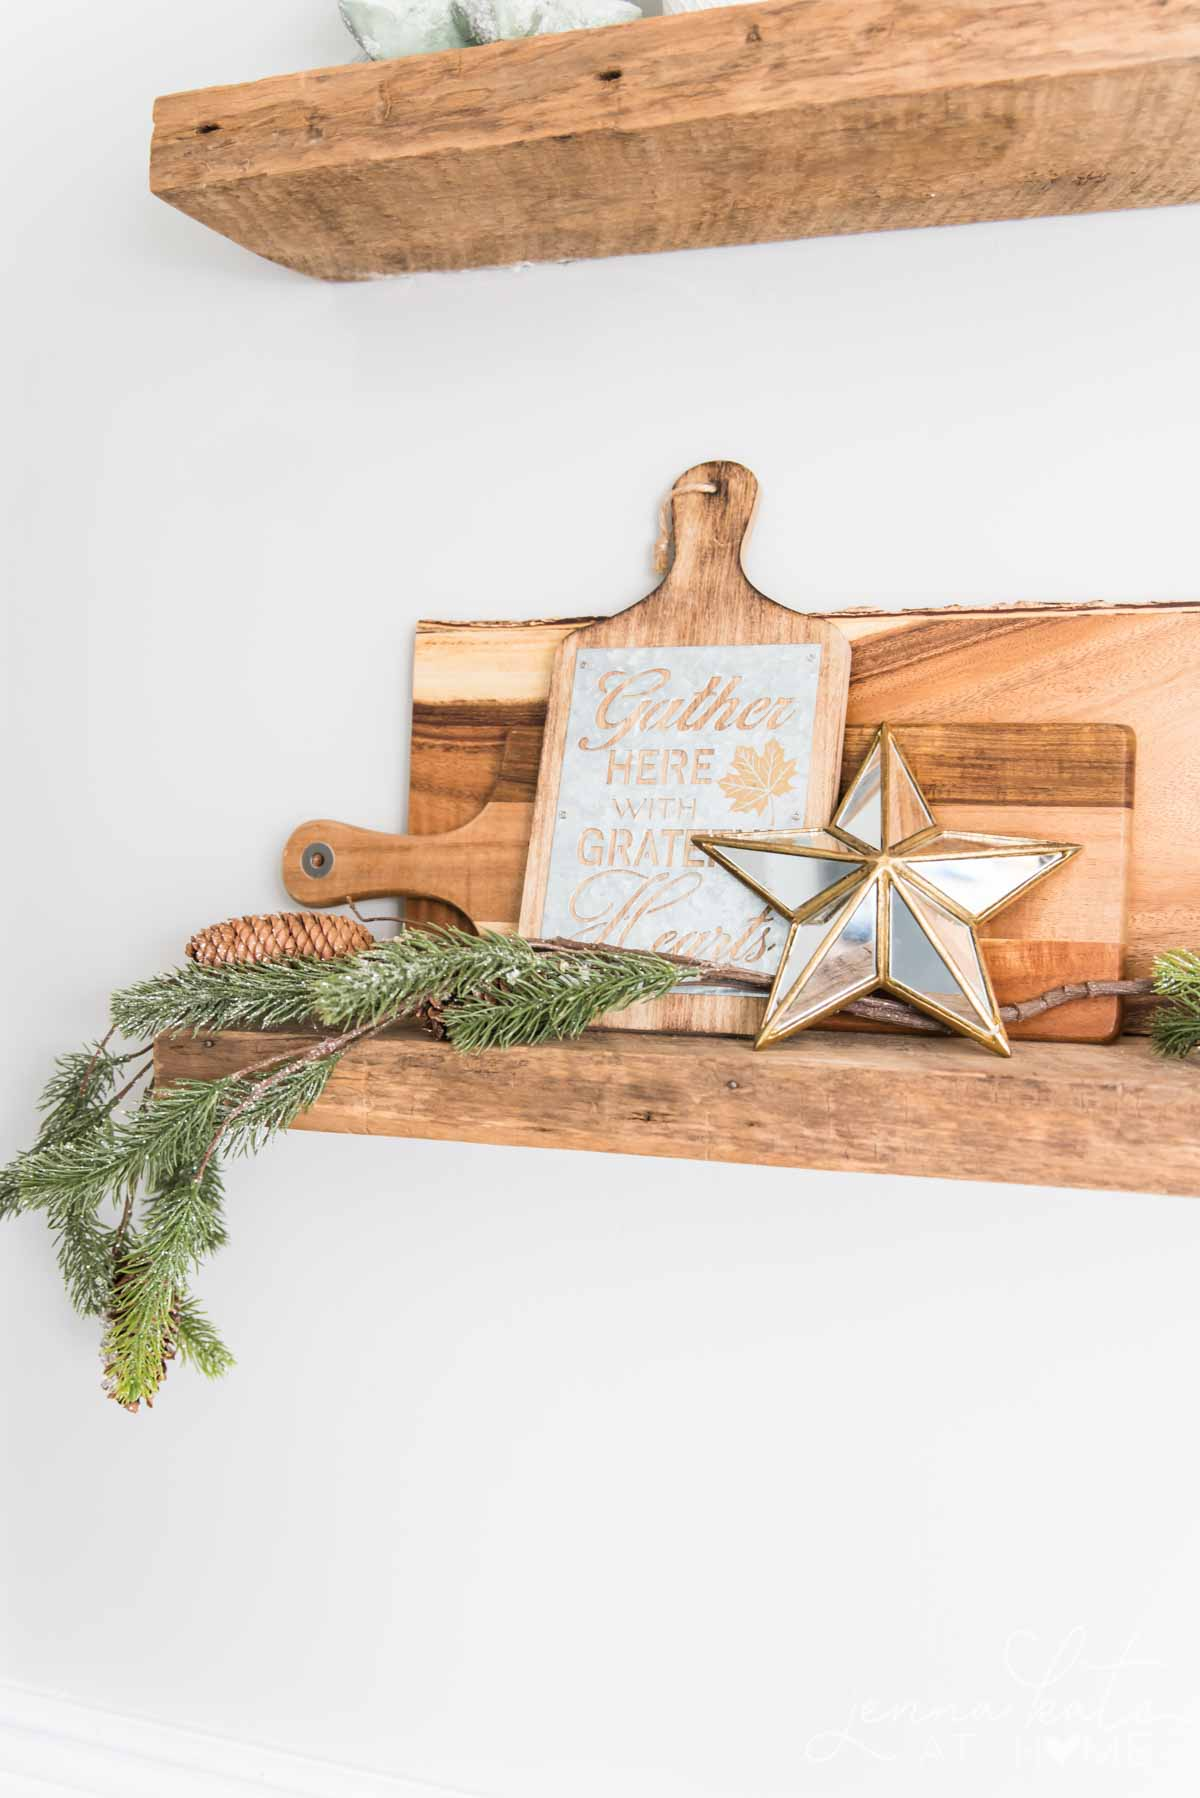 Kitchen shelves with Christmas decor, wooden cutting boards and greenery